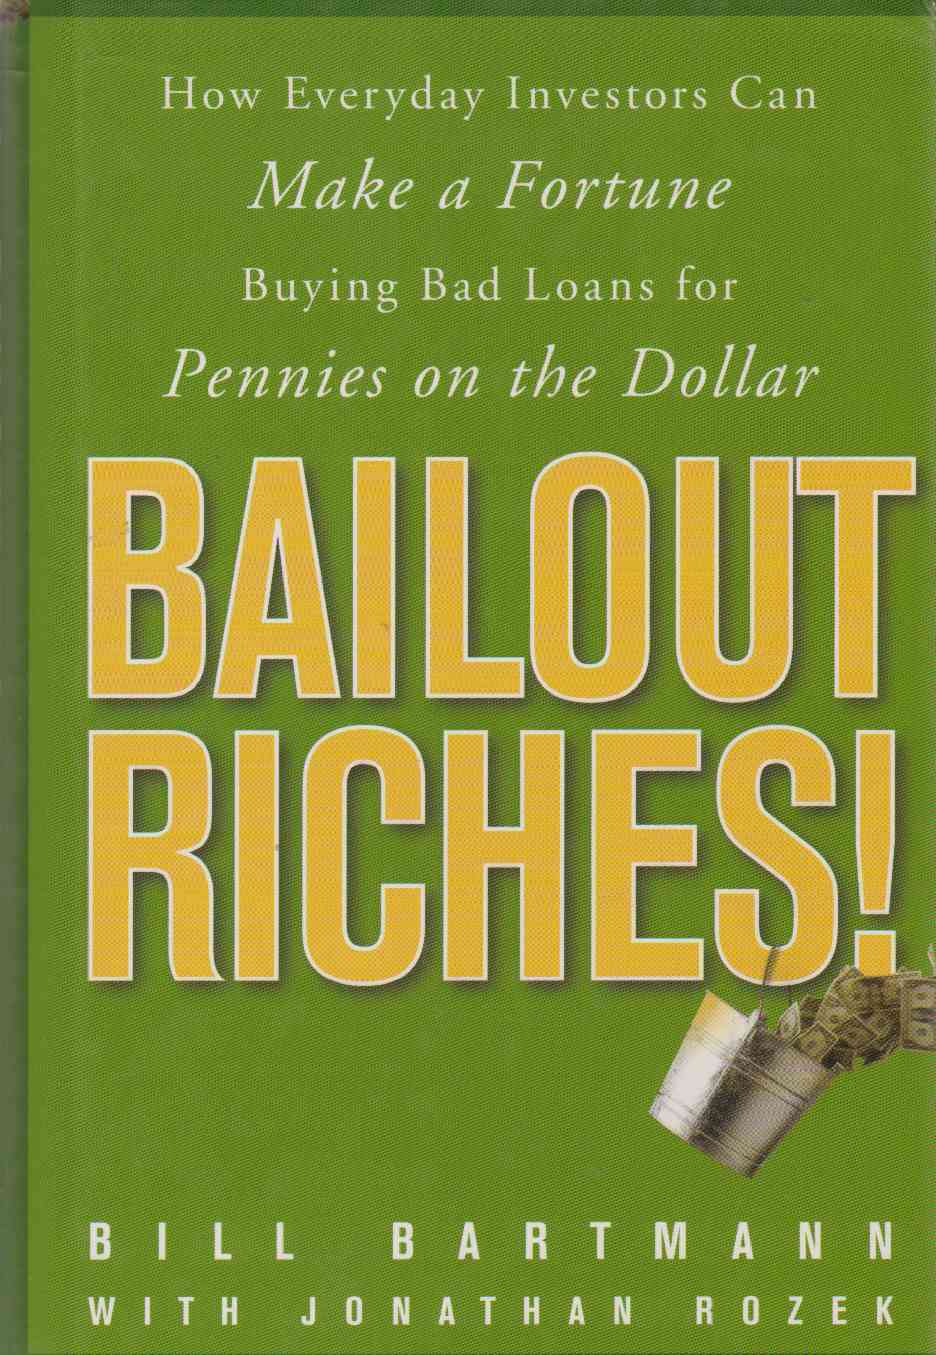 Image for BAILOUT RICHES!  How Everyday Investors Can Make a Fortune Buying Bad Loans for Pennies on the Dollar